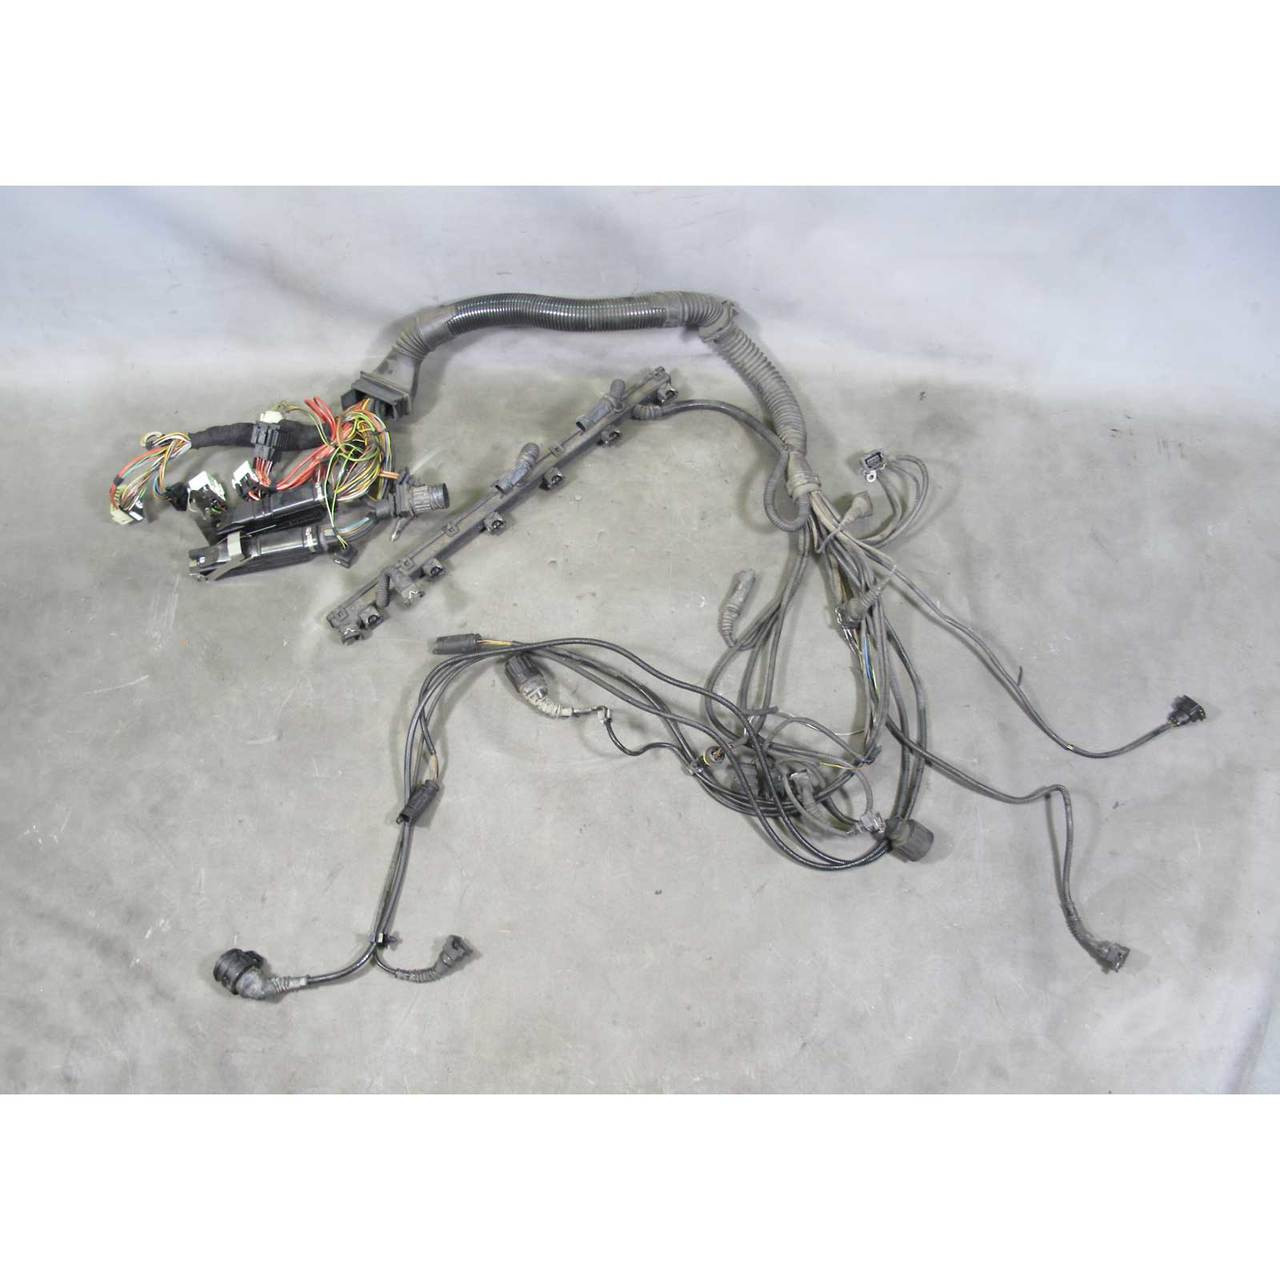 1997 Bmw 528i Wiring Harness Electrical Diagrams E39 M52 6 Cylinder Engine For Auto 2000